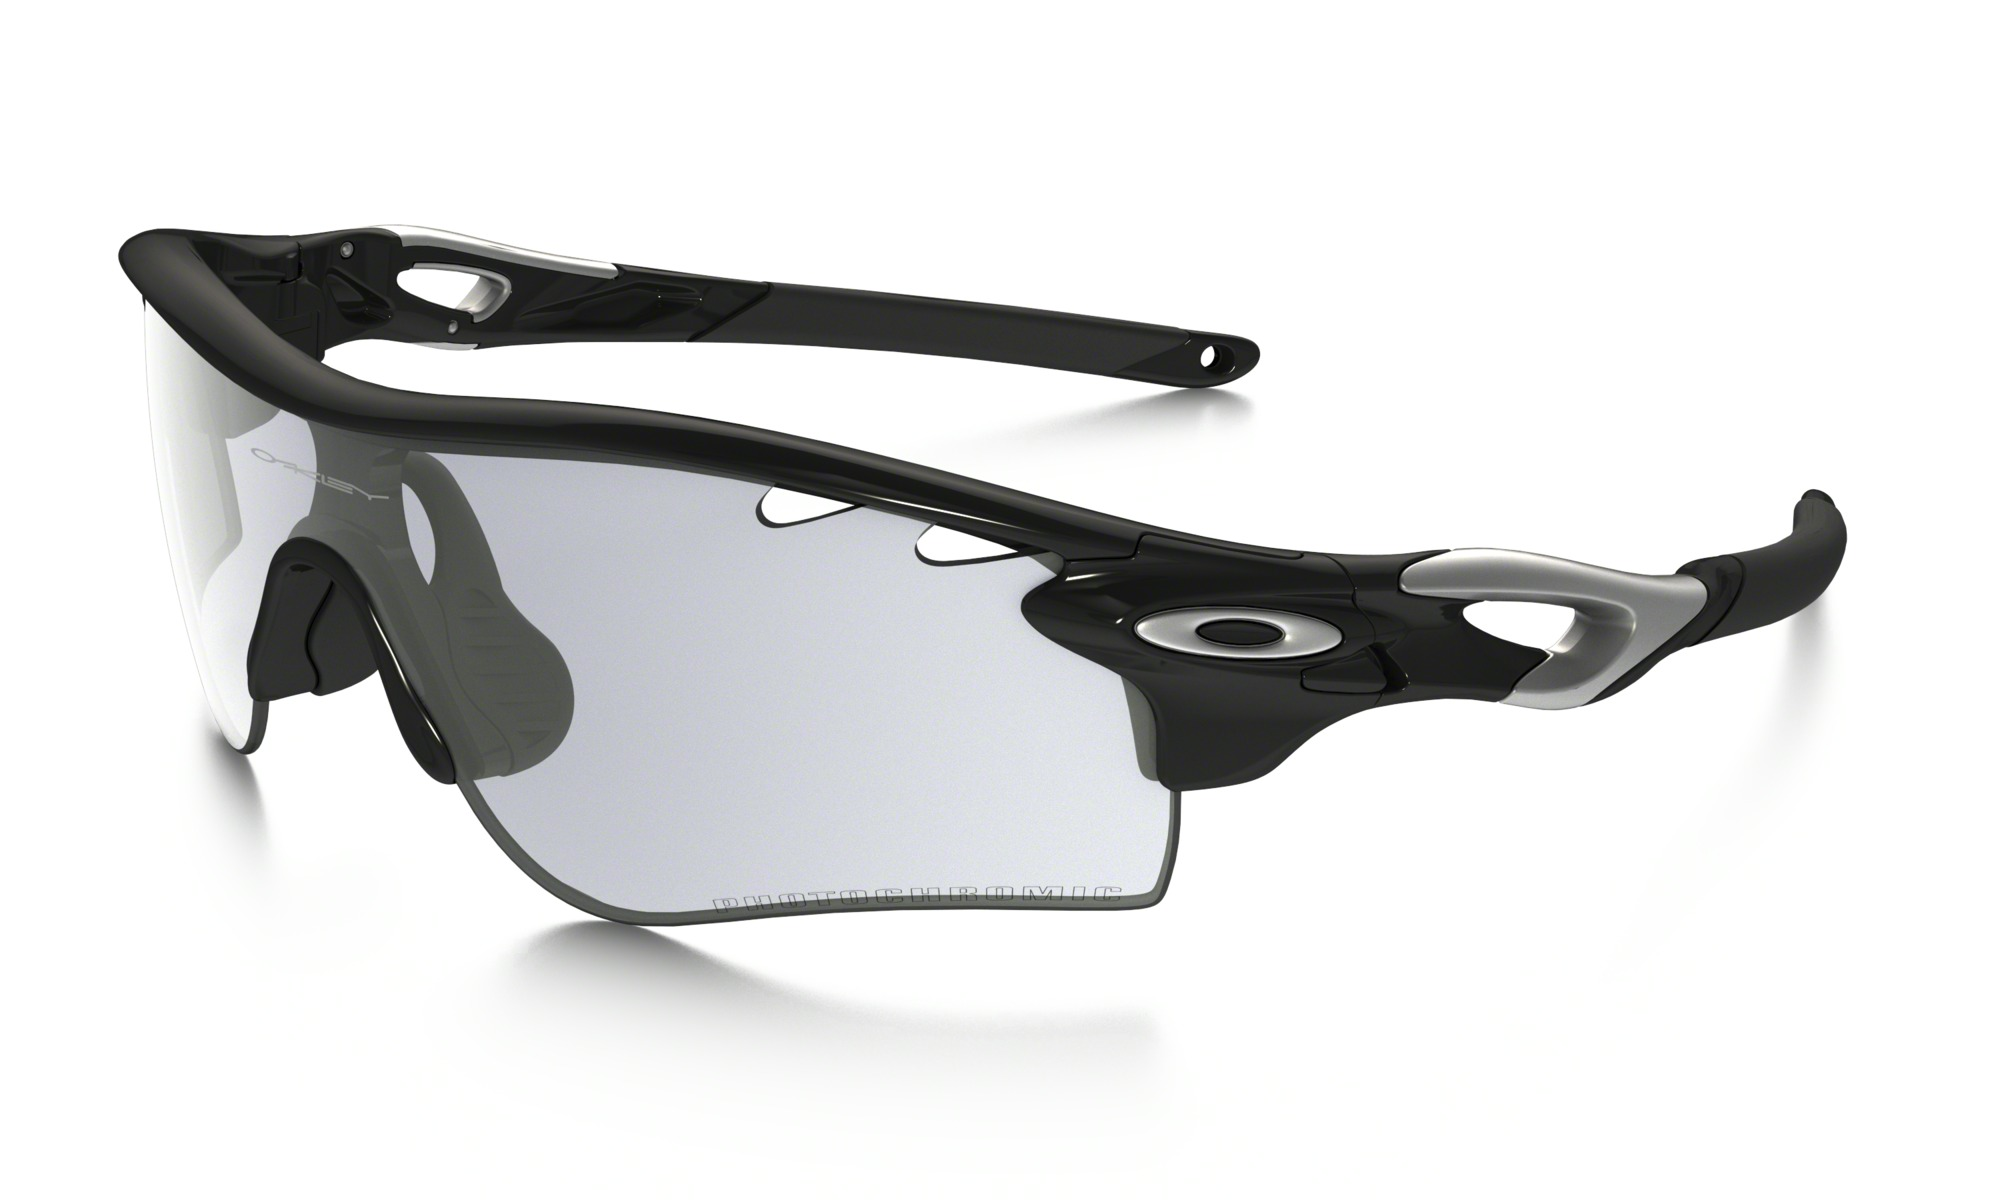 c62ba50a4b4 Product Inquiry. Name  . Email  . Phone  . Subject RADARLOCK PATH POLISHED  BLACK   IRIDIUM PHOTOCHROMIC